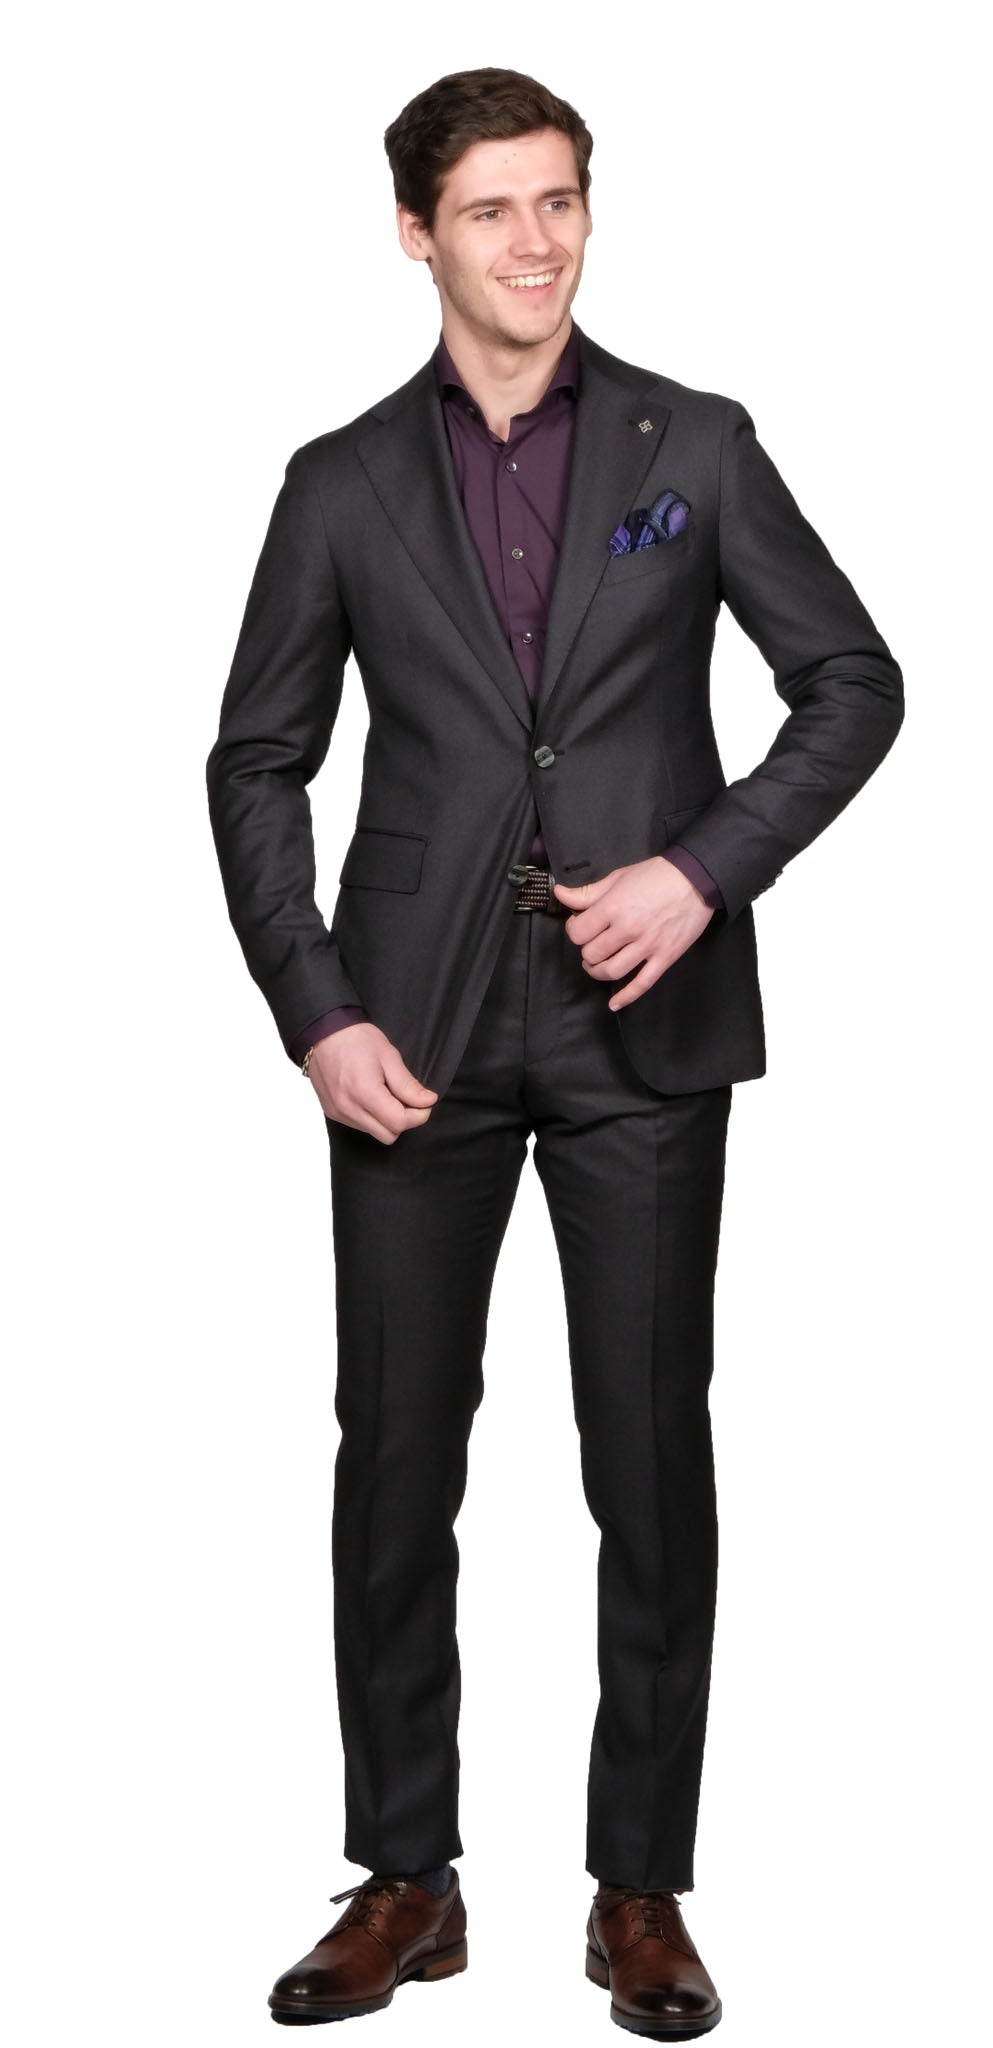 Tagliatore Nailhead Charcoal Suit - Mr. Derk Apparel Ltd.